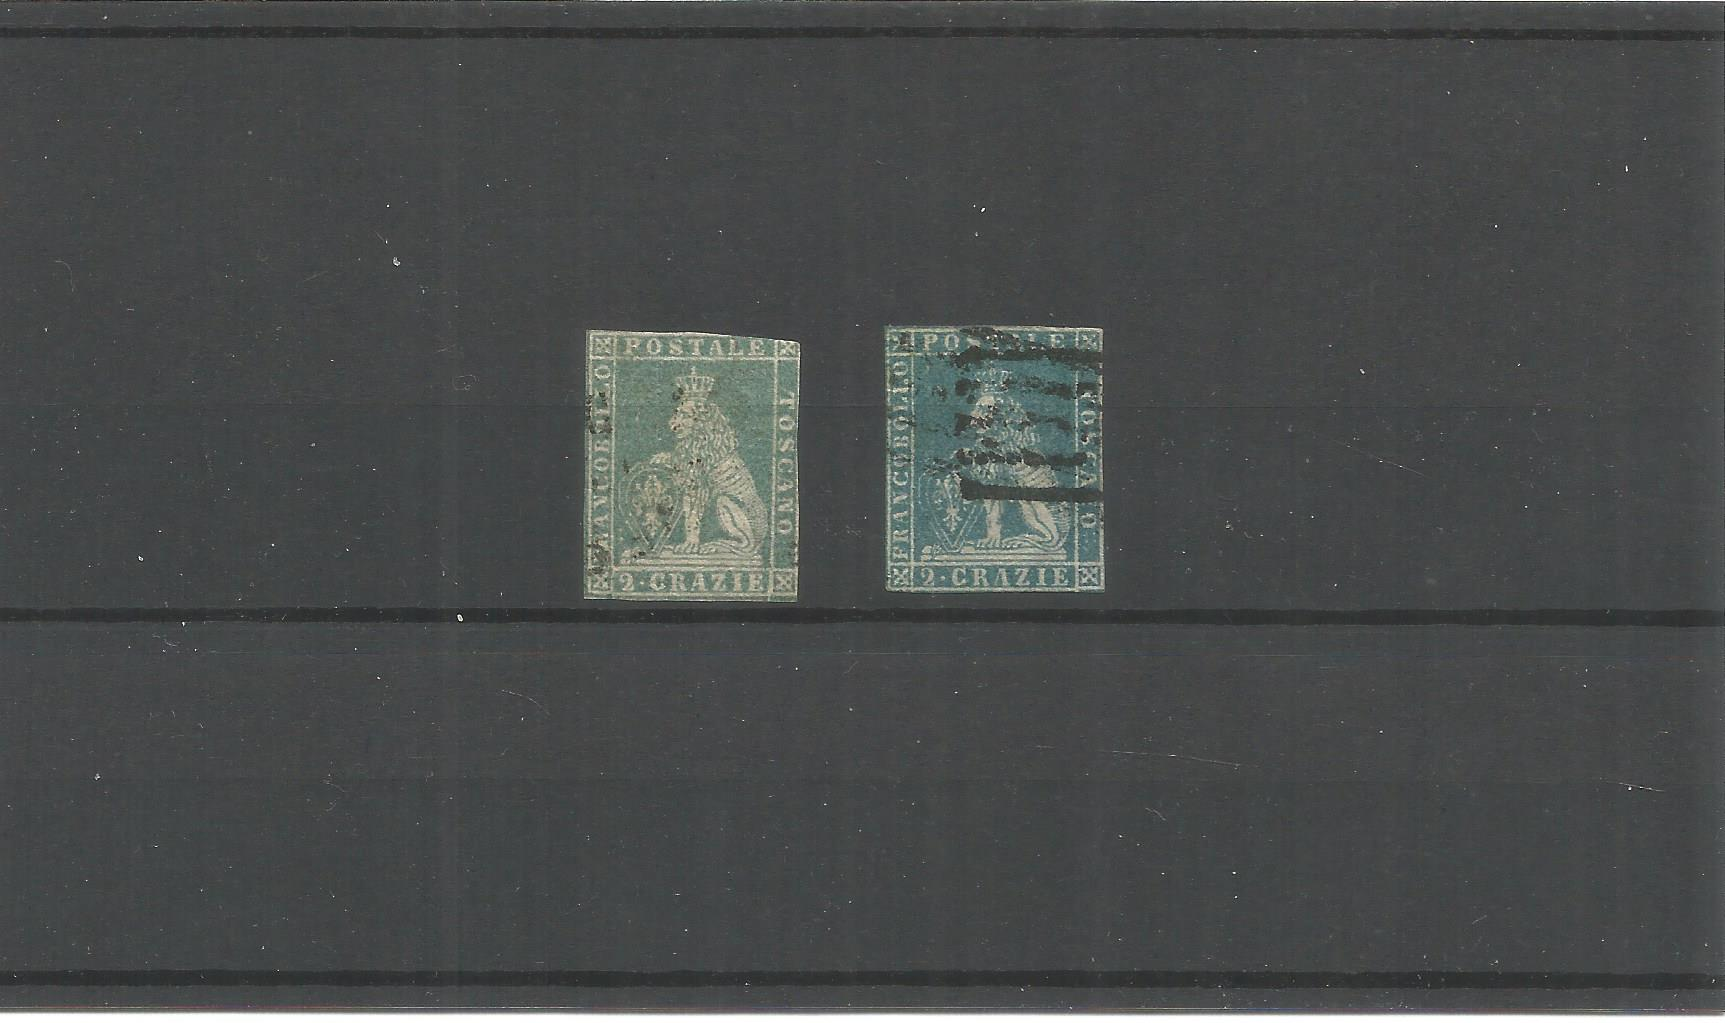 Tuscany stamps. Quantity 2. Good condition. We combine postage on multiple winning lots and can ship